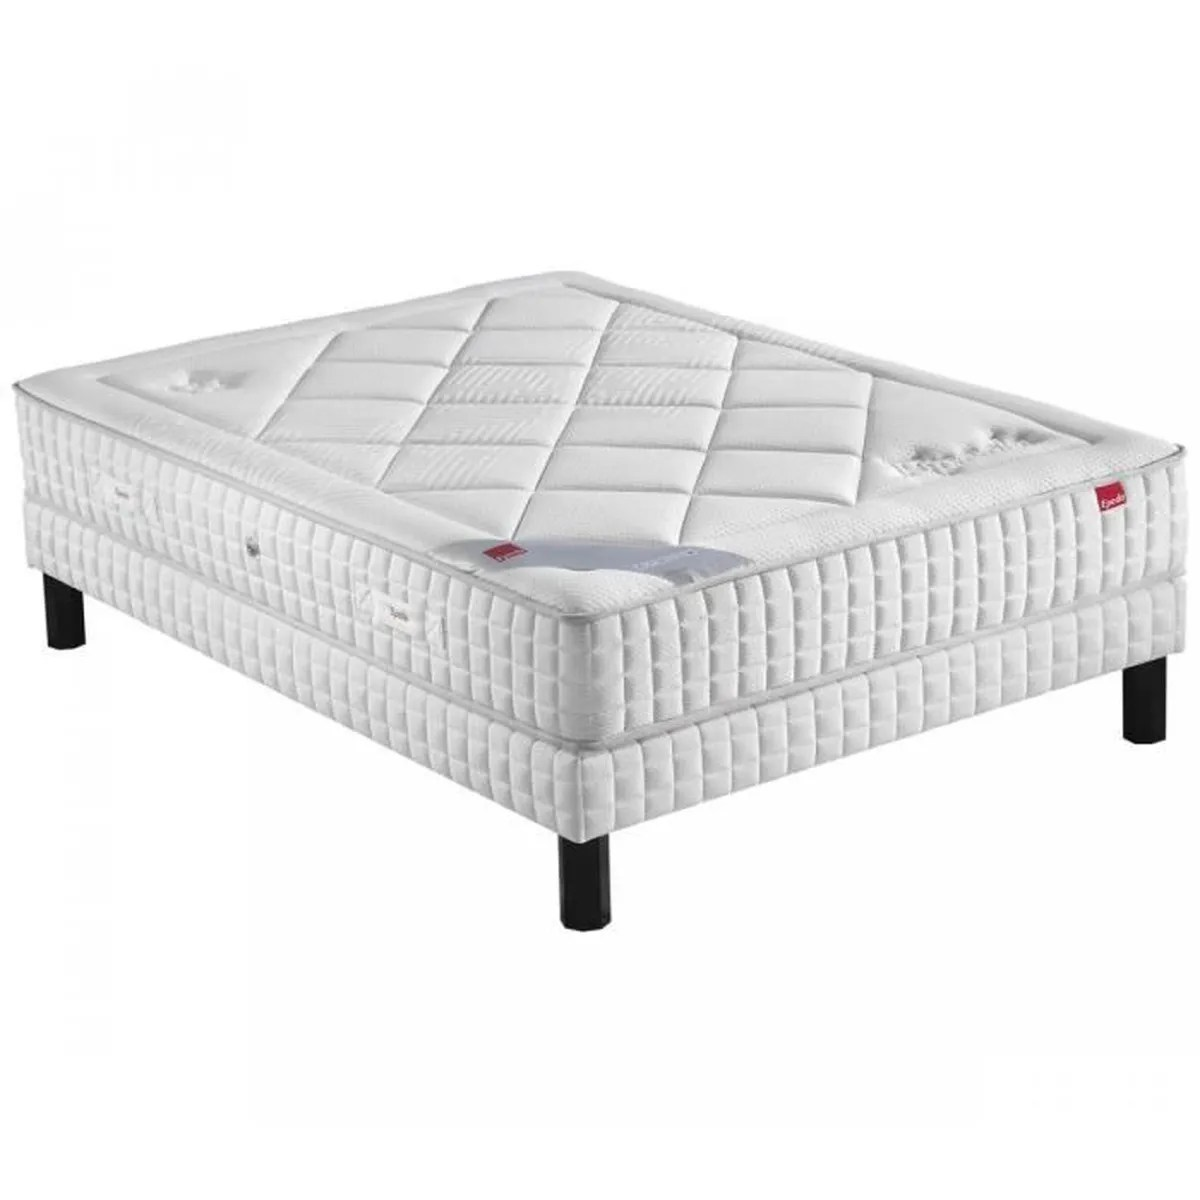 Matelas Epeda 160x200 Ensemble Epeda Ressorts Multi Actif Velours Sommier Pieds 160x200